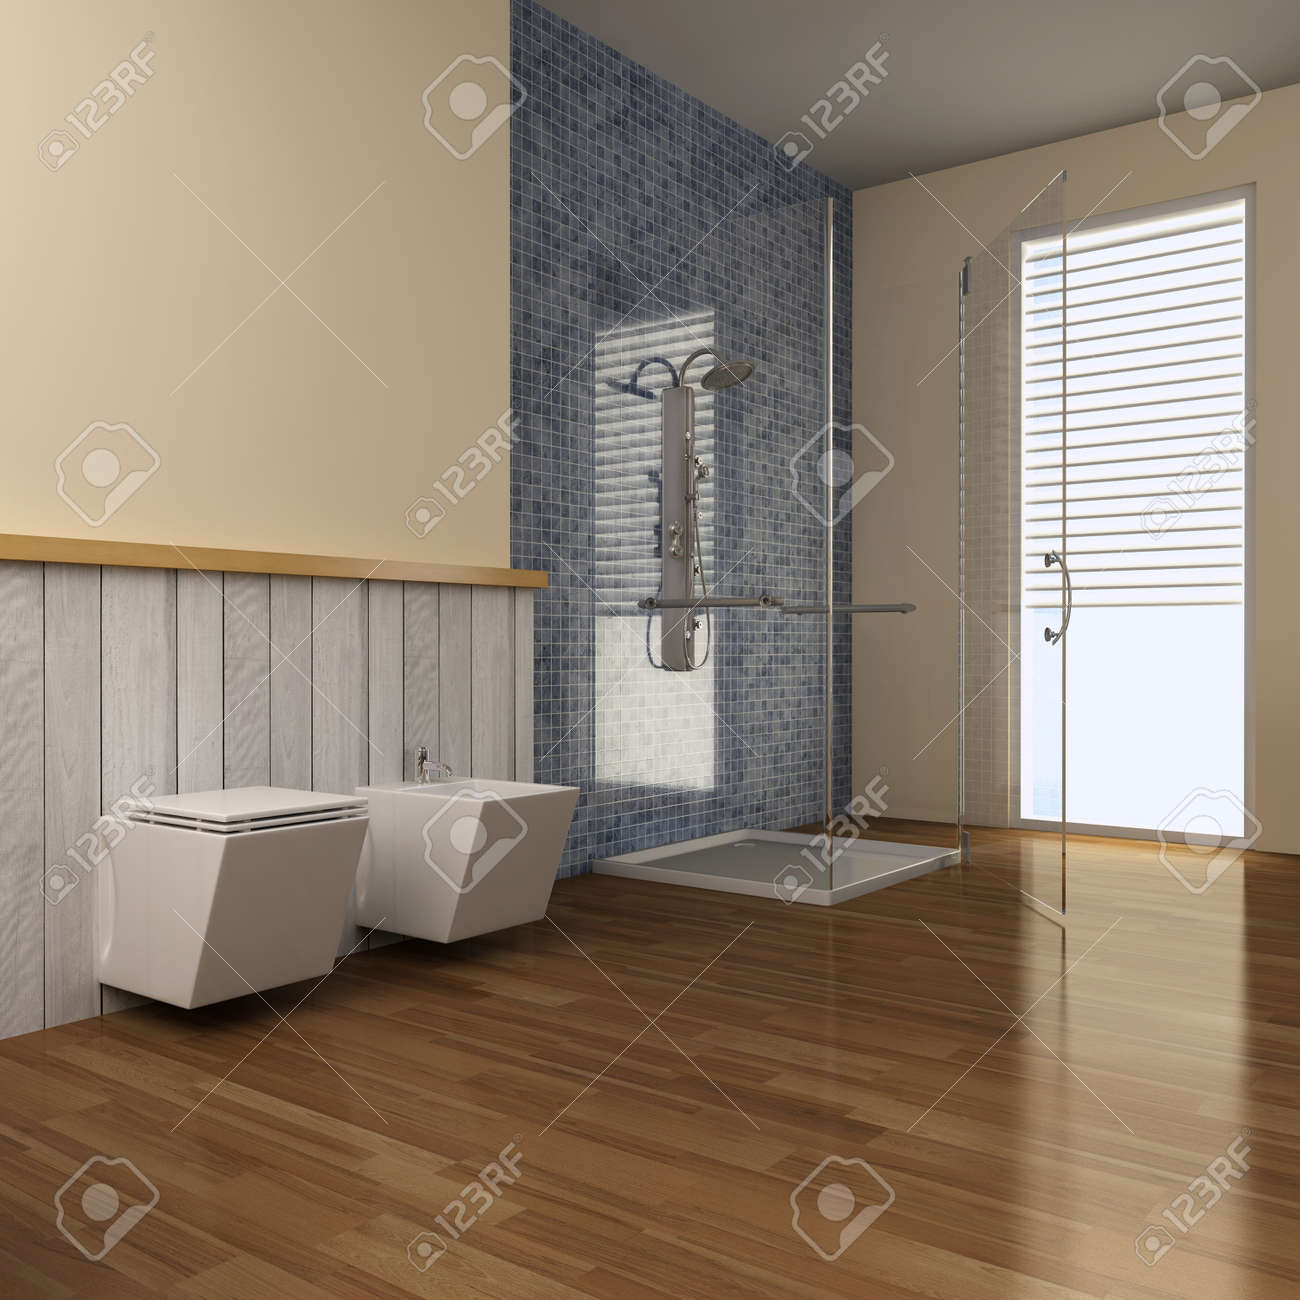 3d render interior of modern bathroom Standard-Bild - 8656048